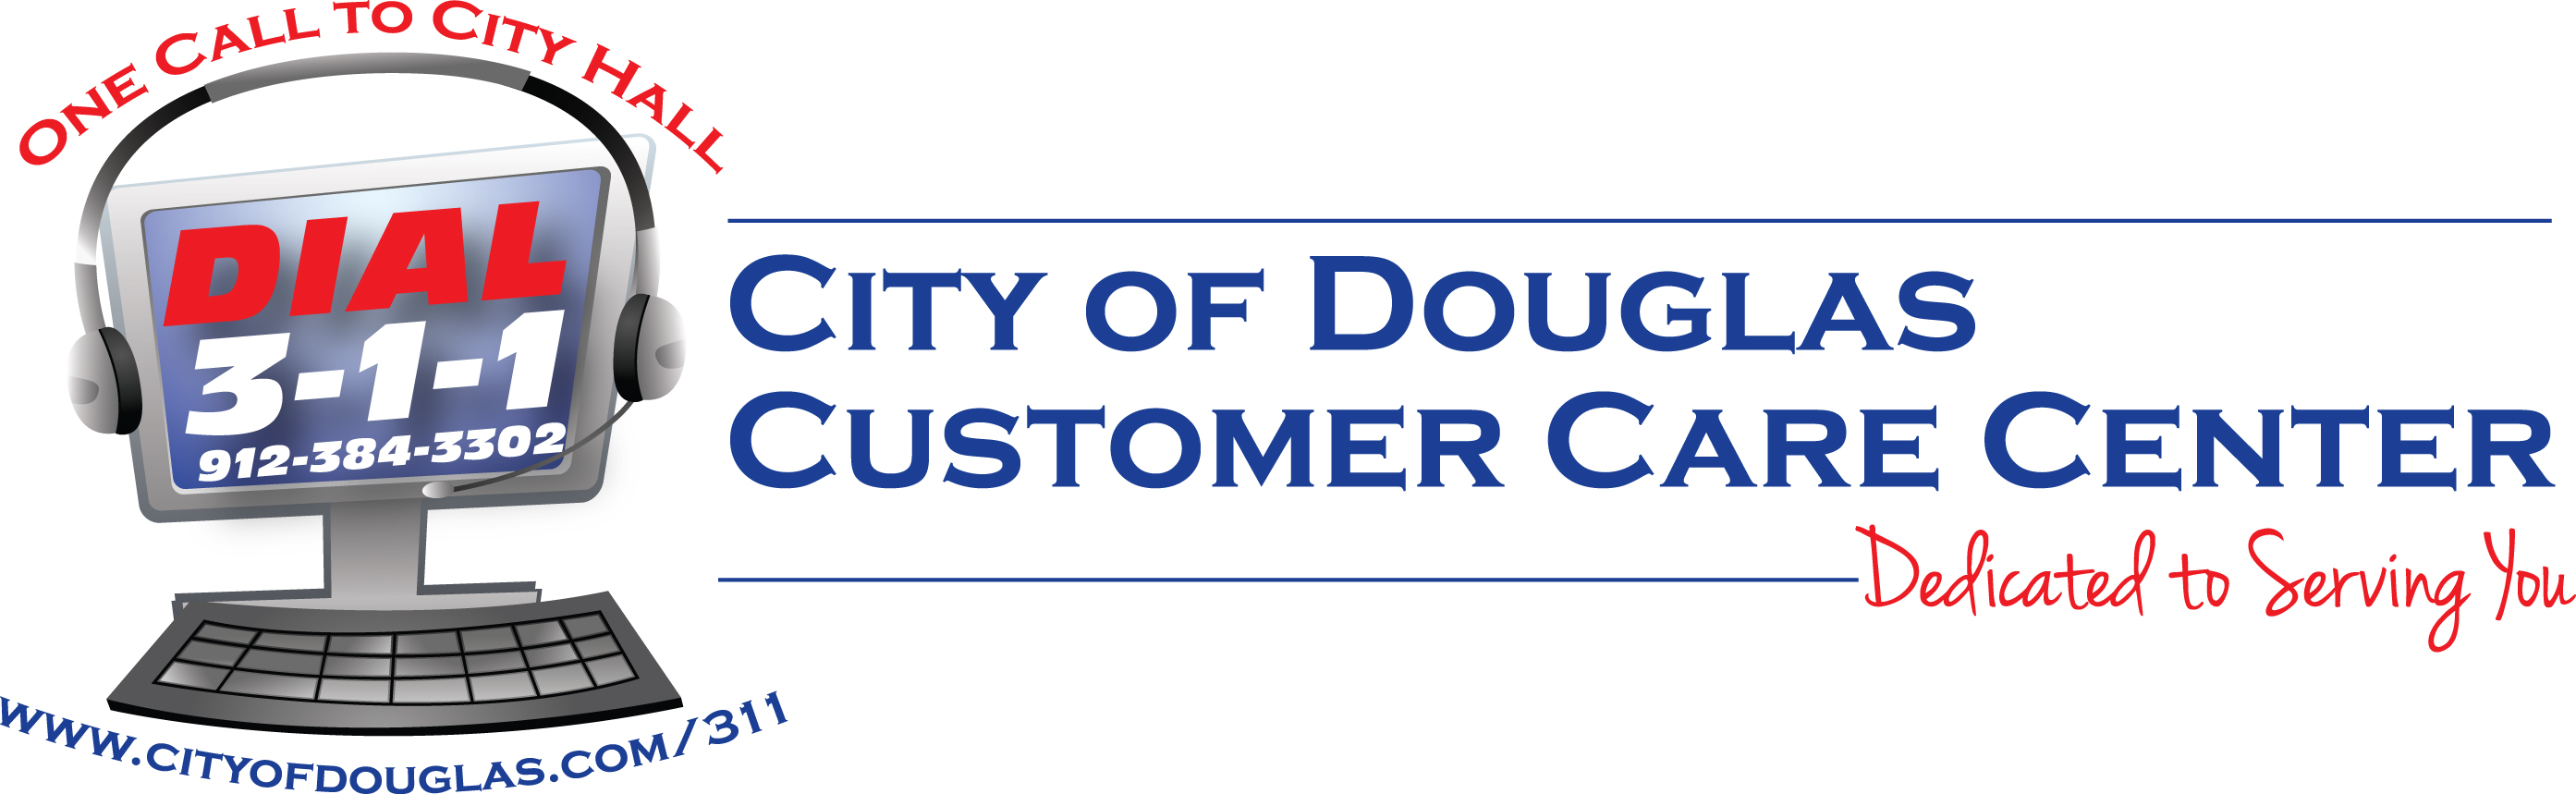 City of Douglas Customer Care Center